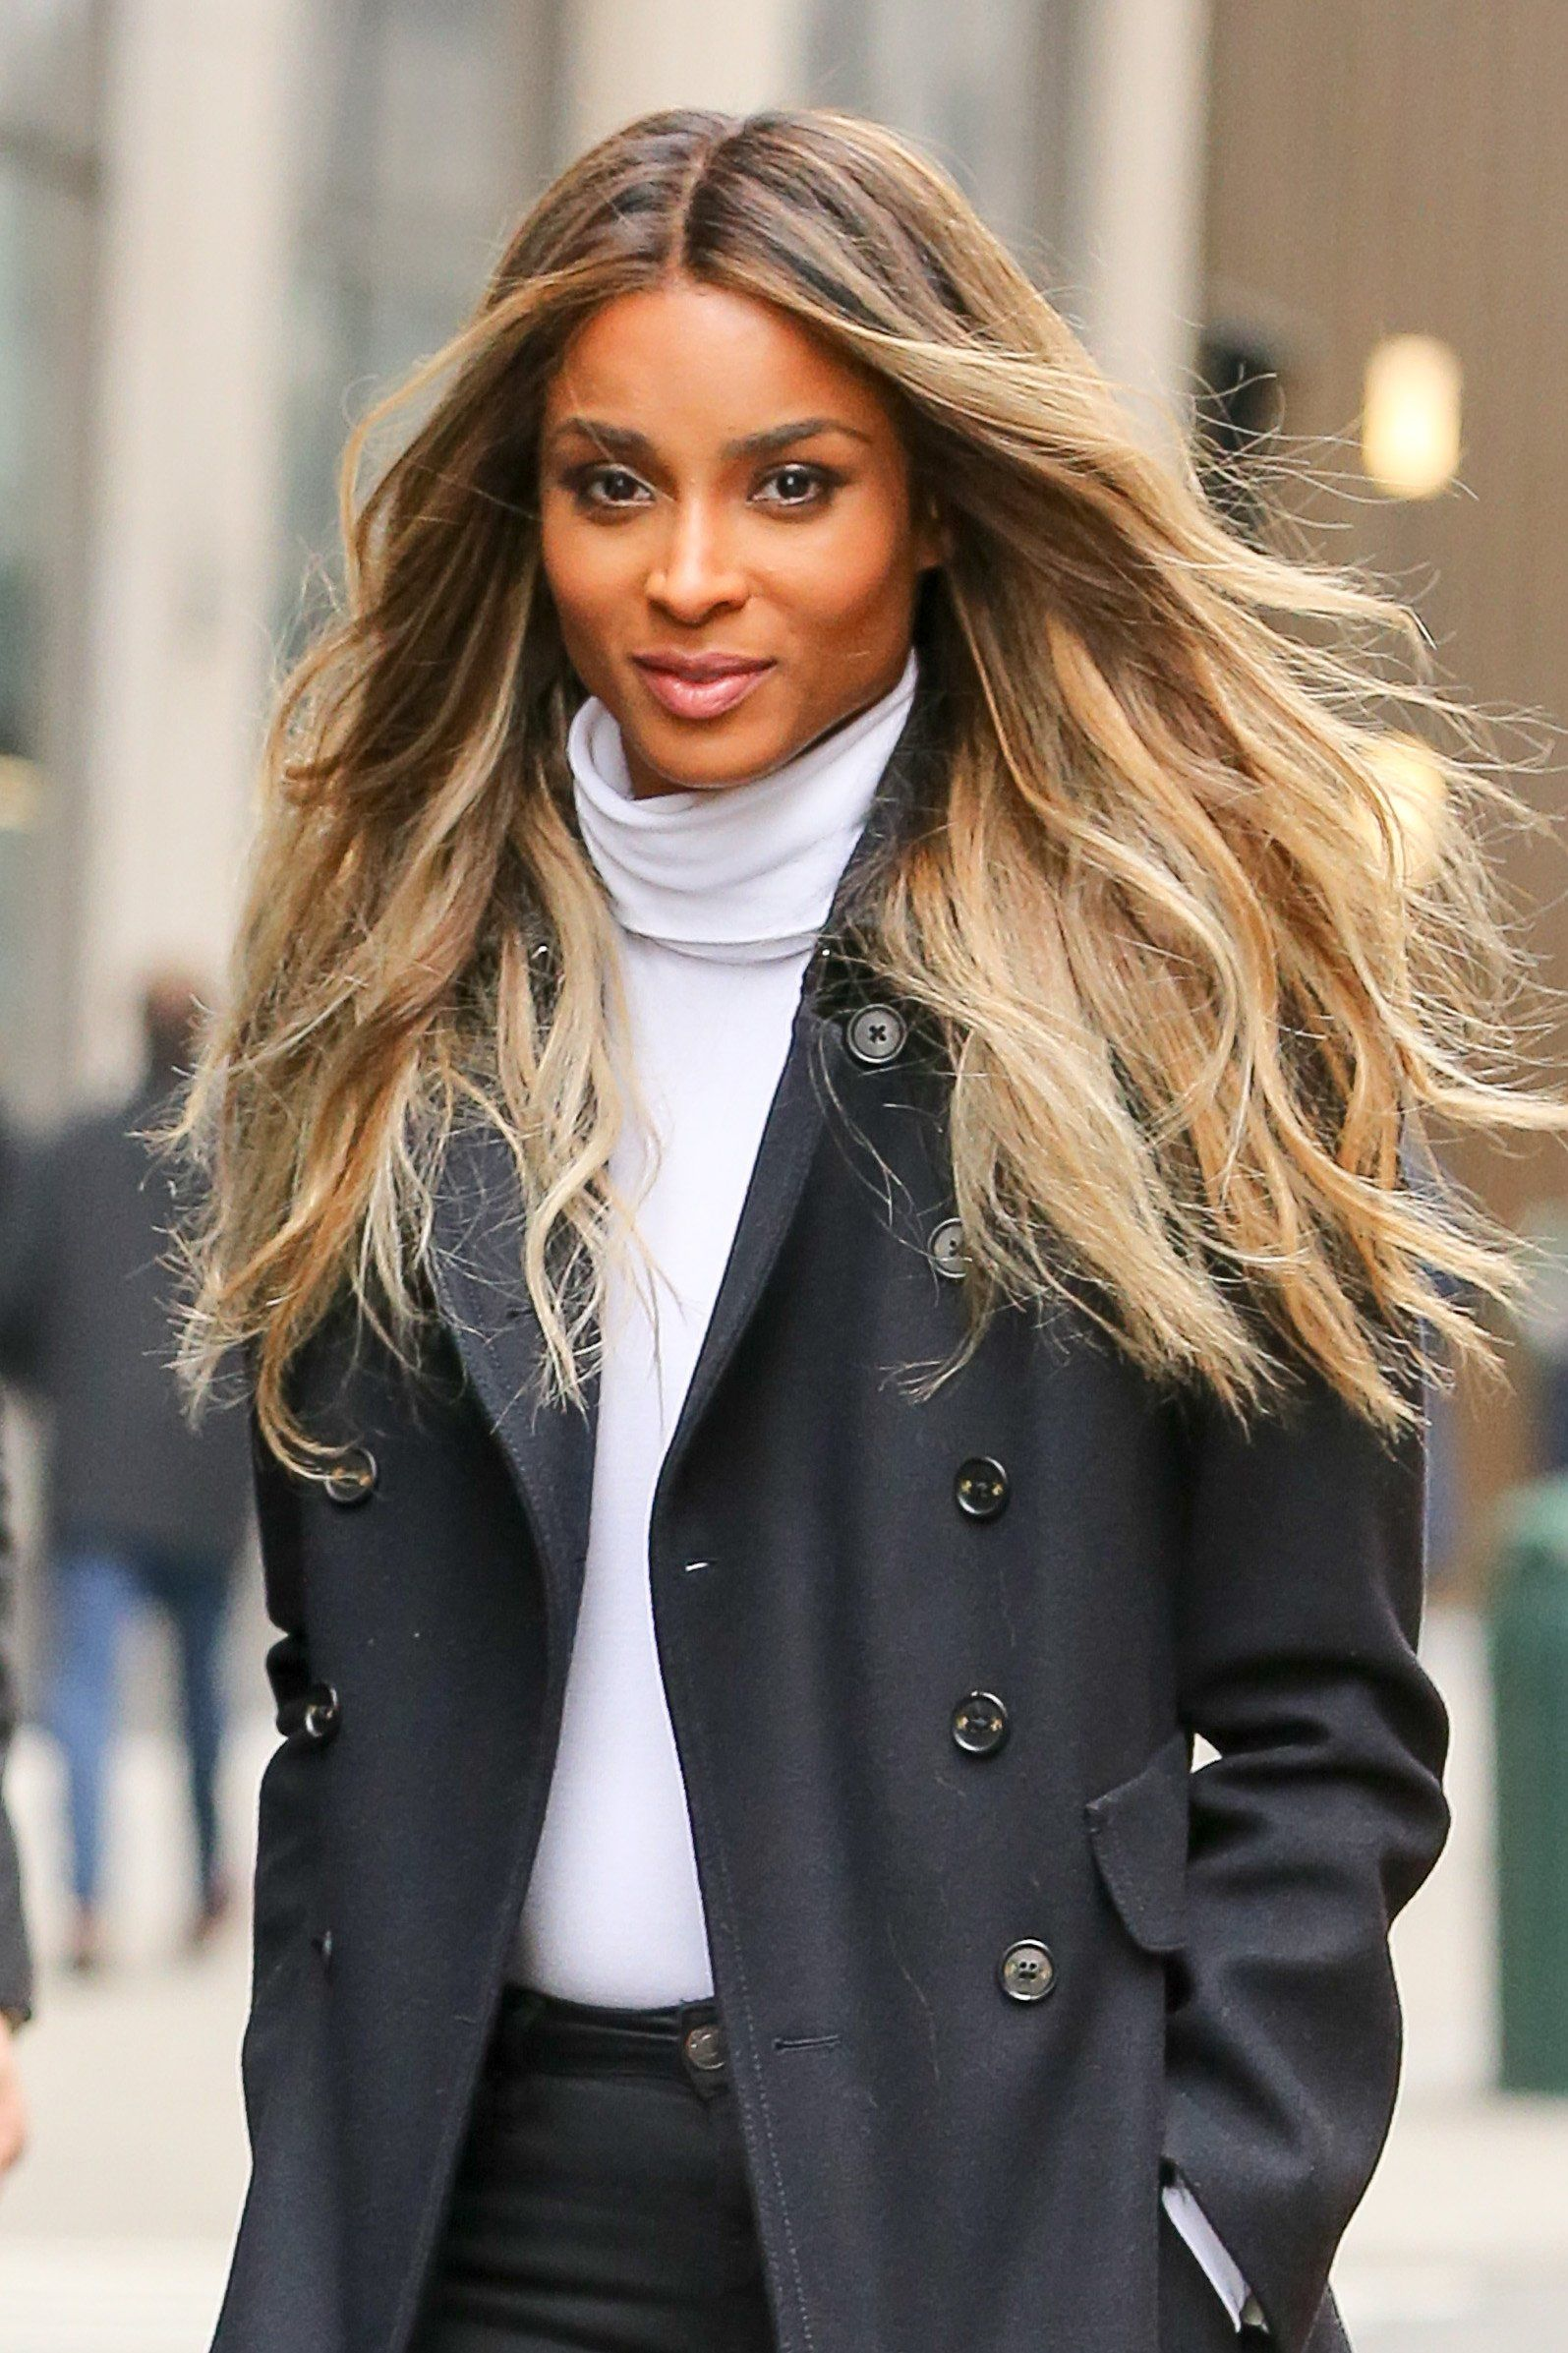 Ciara Hairstyles Thinking Of Going Back Blonde  Hair  Pinterest  February 11 Hair